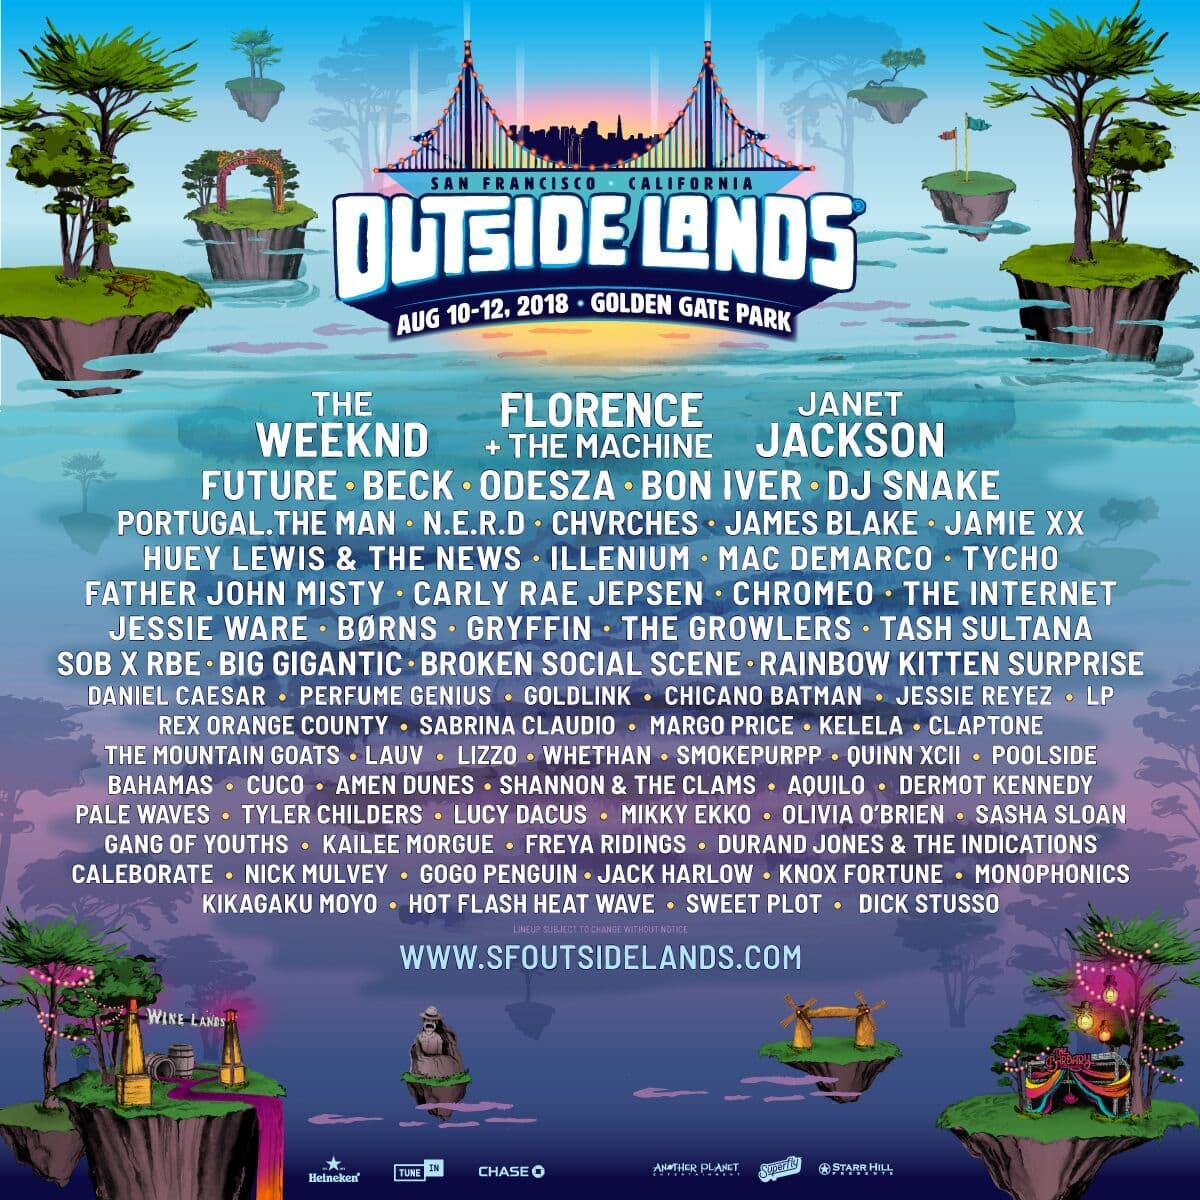 Outside Lands 2018 Lineup The Weeknd Future Janet Jackson bon iver portugal the man nerd pharrell mac demarco august 10 11 12 2018 san francisco golden gate park california